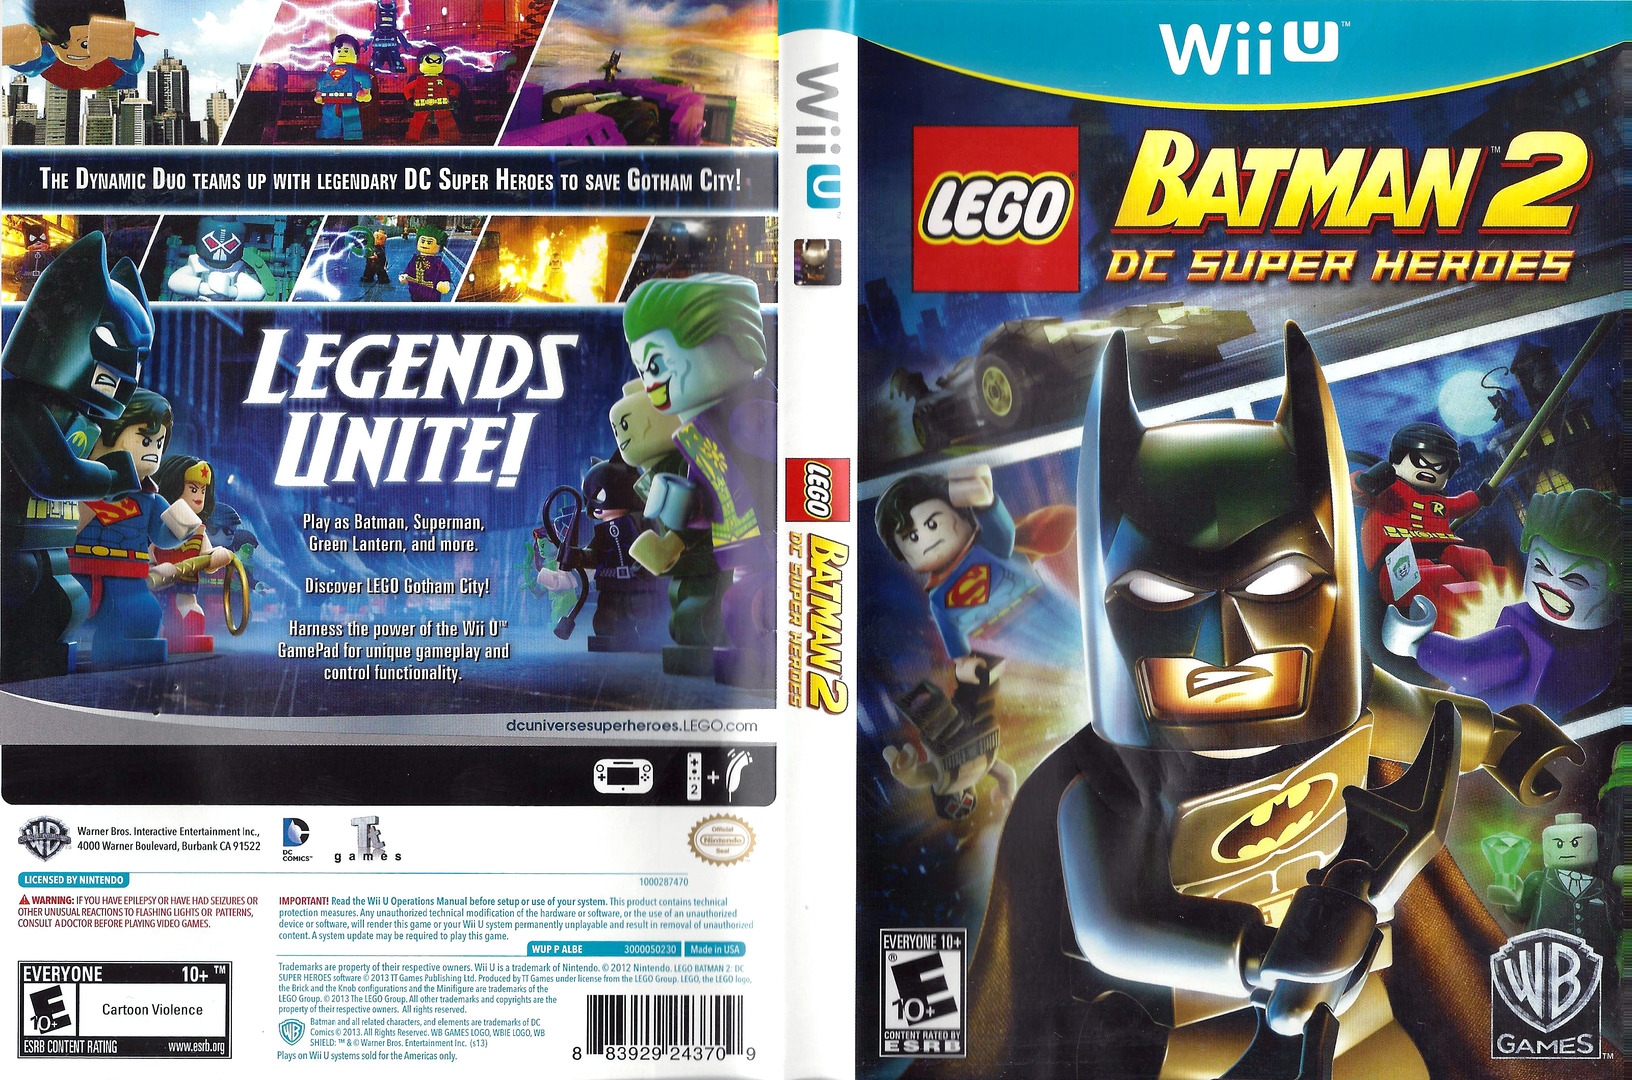 U With Wii Games 2 : Albewr lego batman dc super heroes